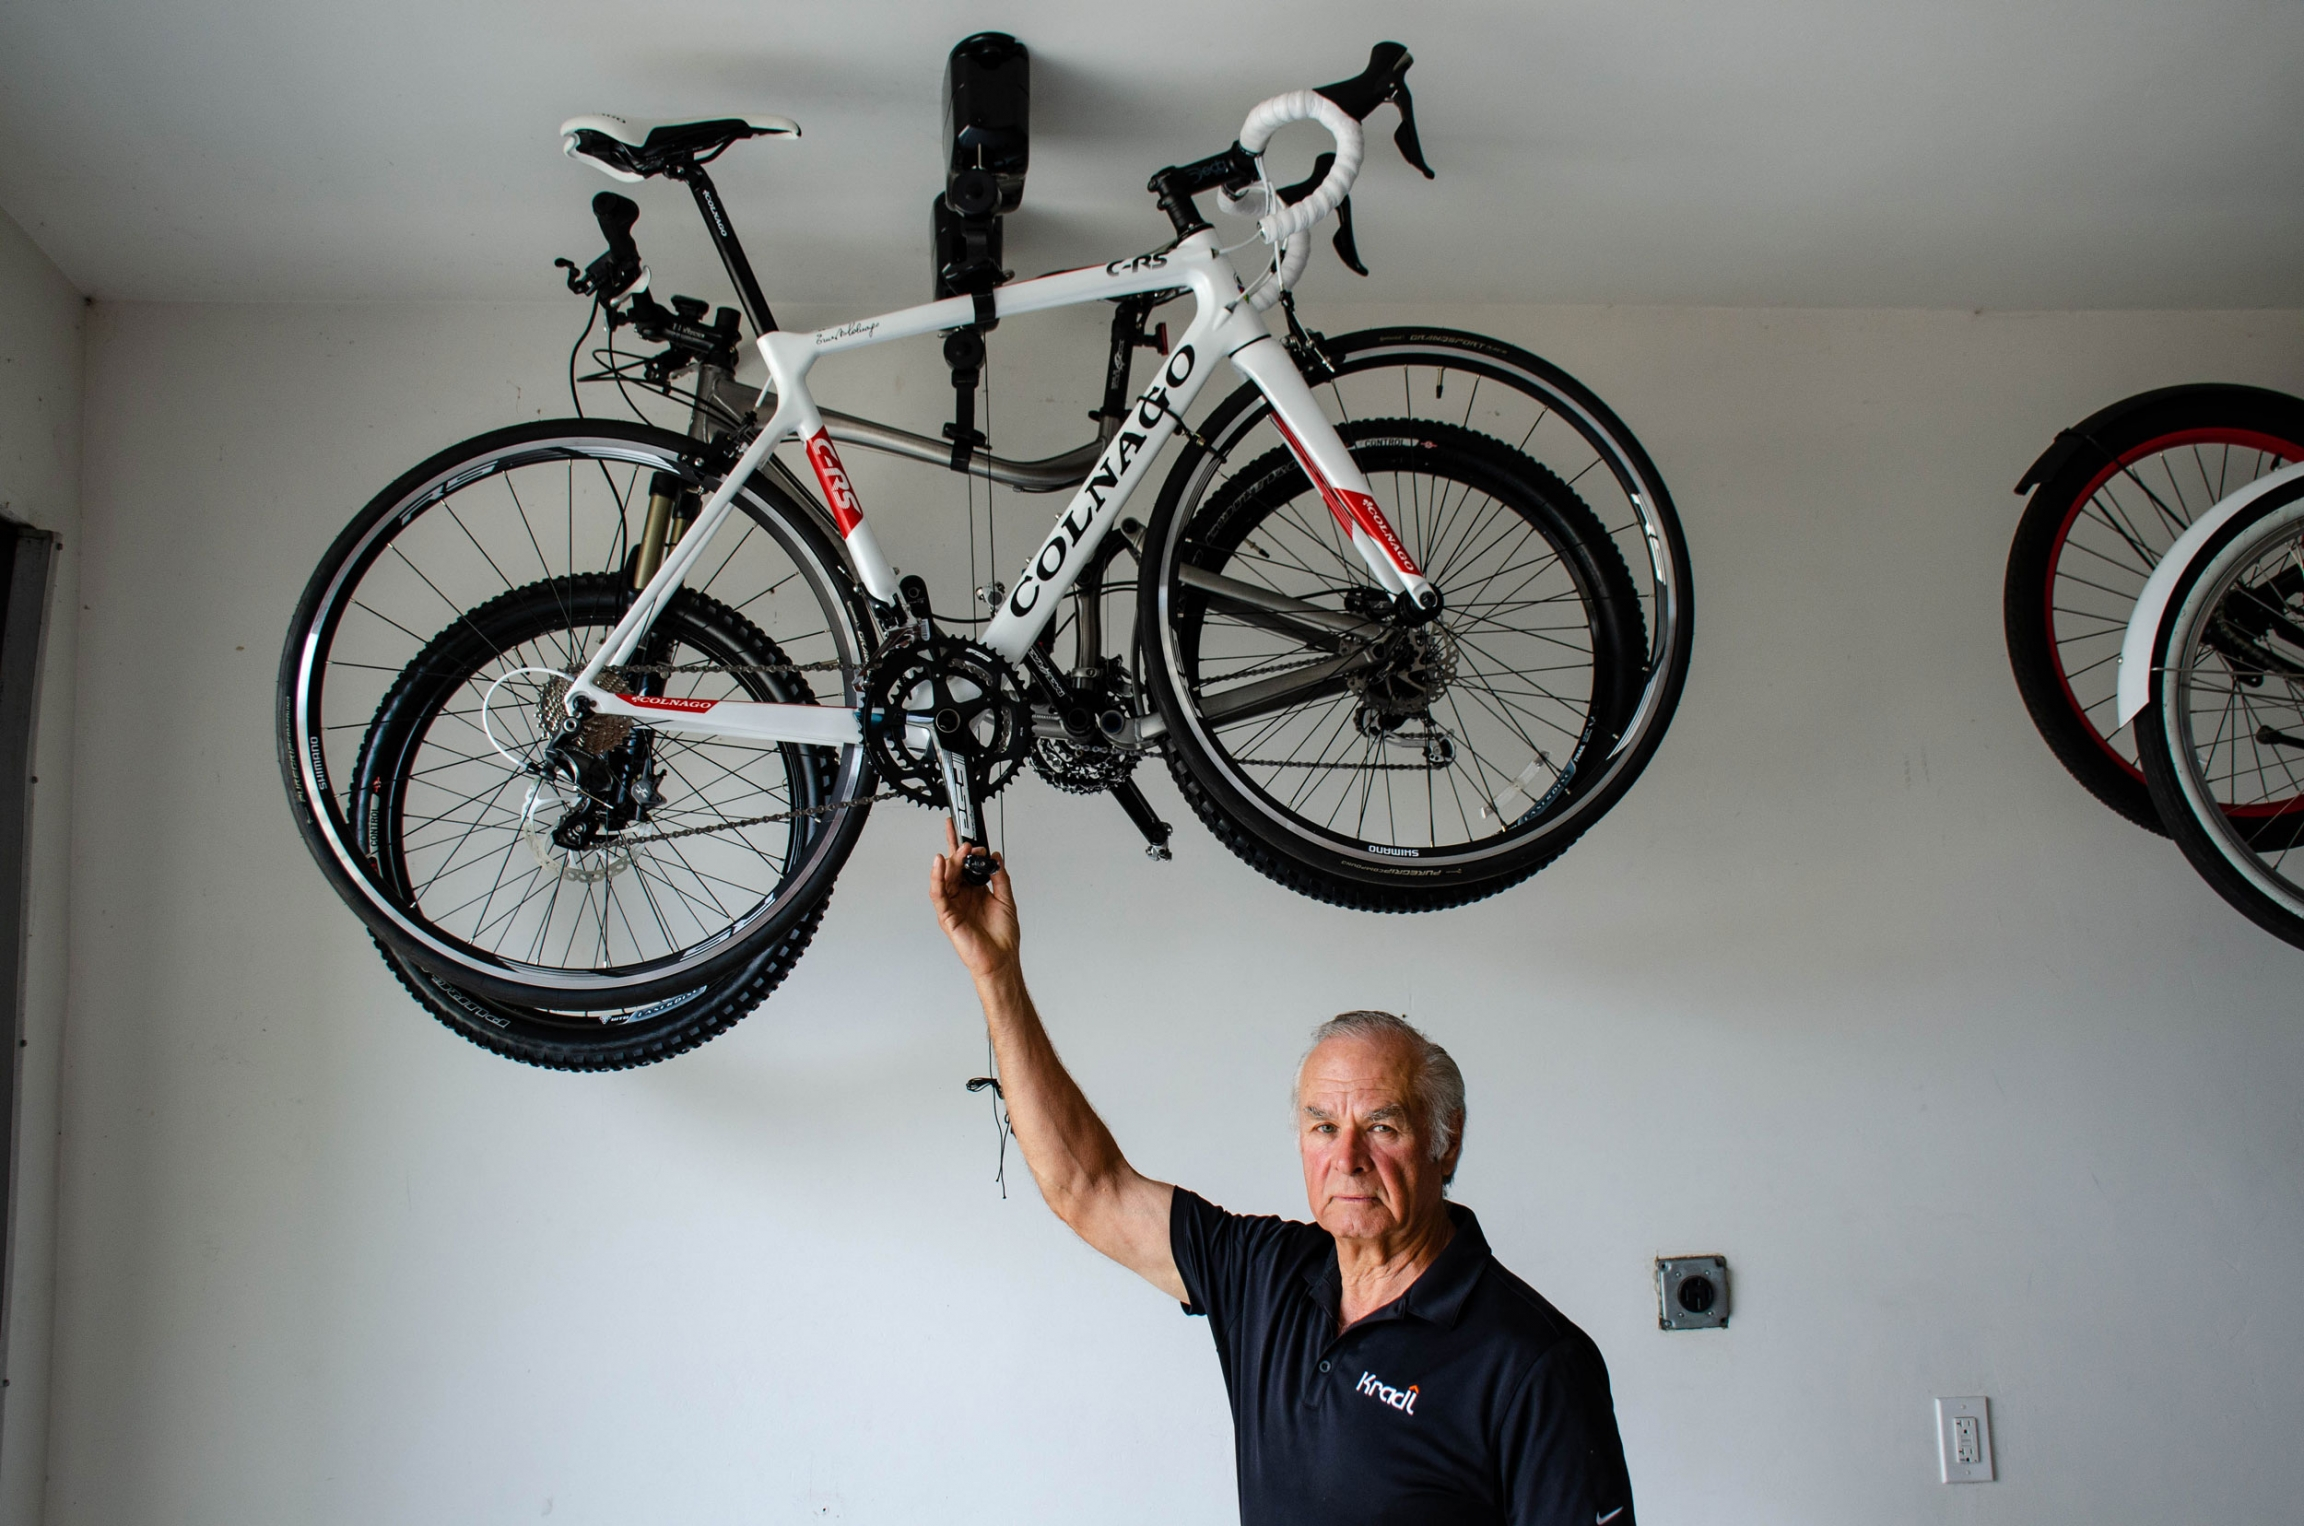 Robert Ozarski says he tried to build his bike lift in the United States, but couldn't find a manufacturer. He quickly found a handful of willing Chinese companies.